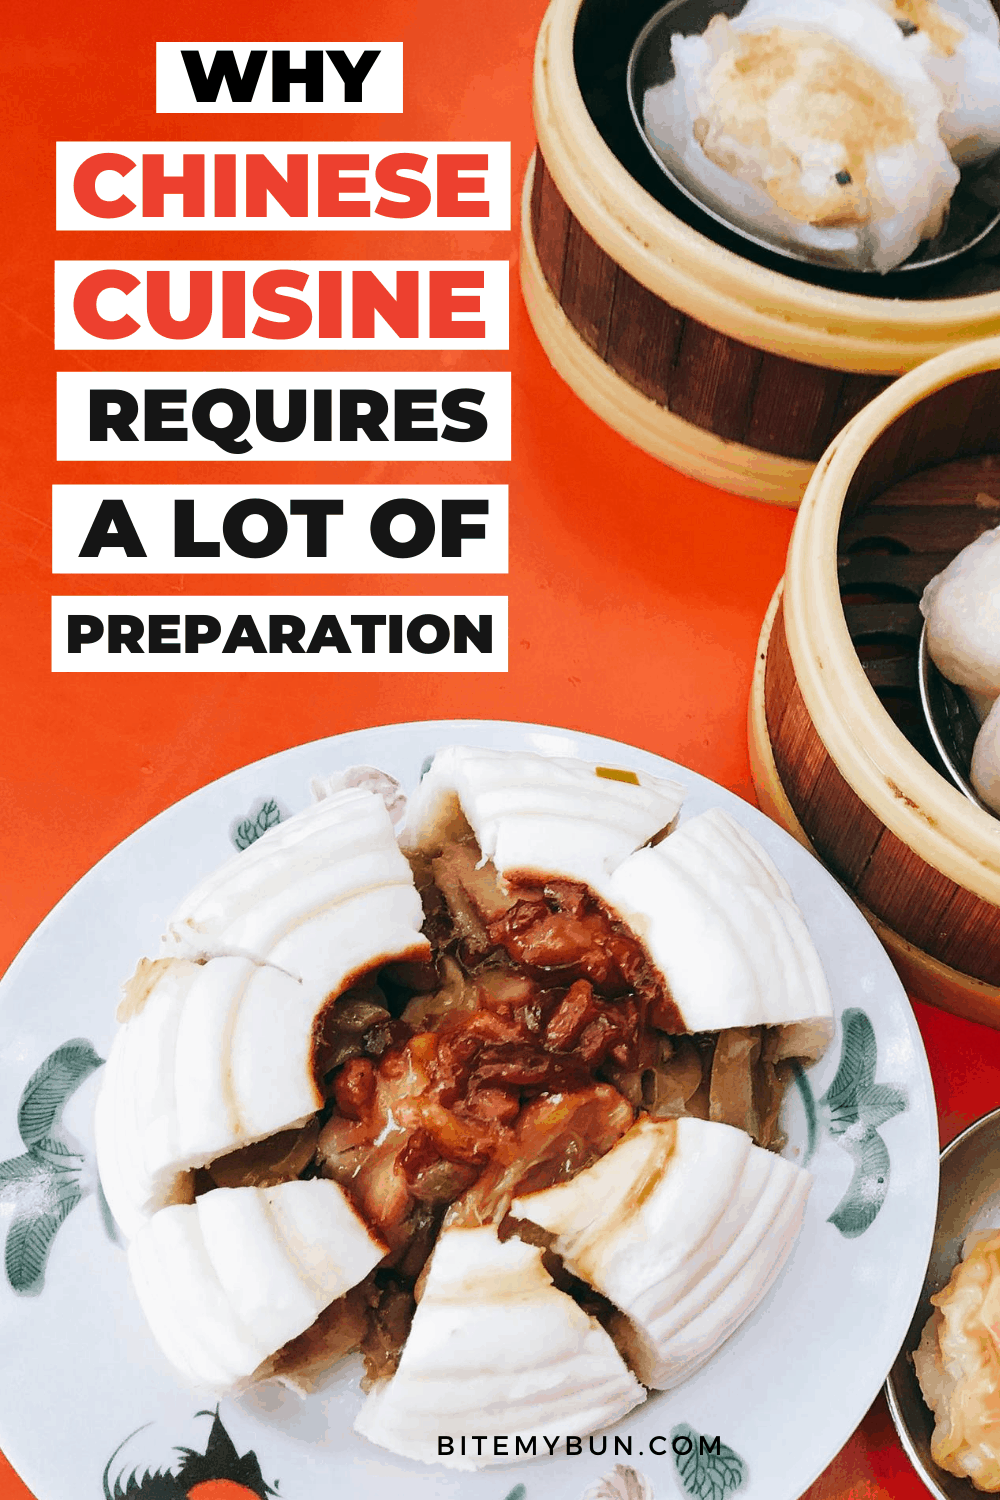 Why Chinese requires a lot of preparation